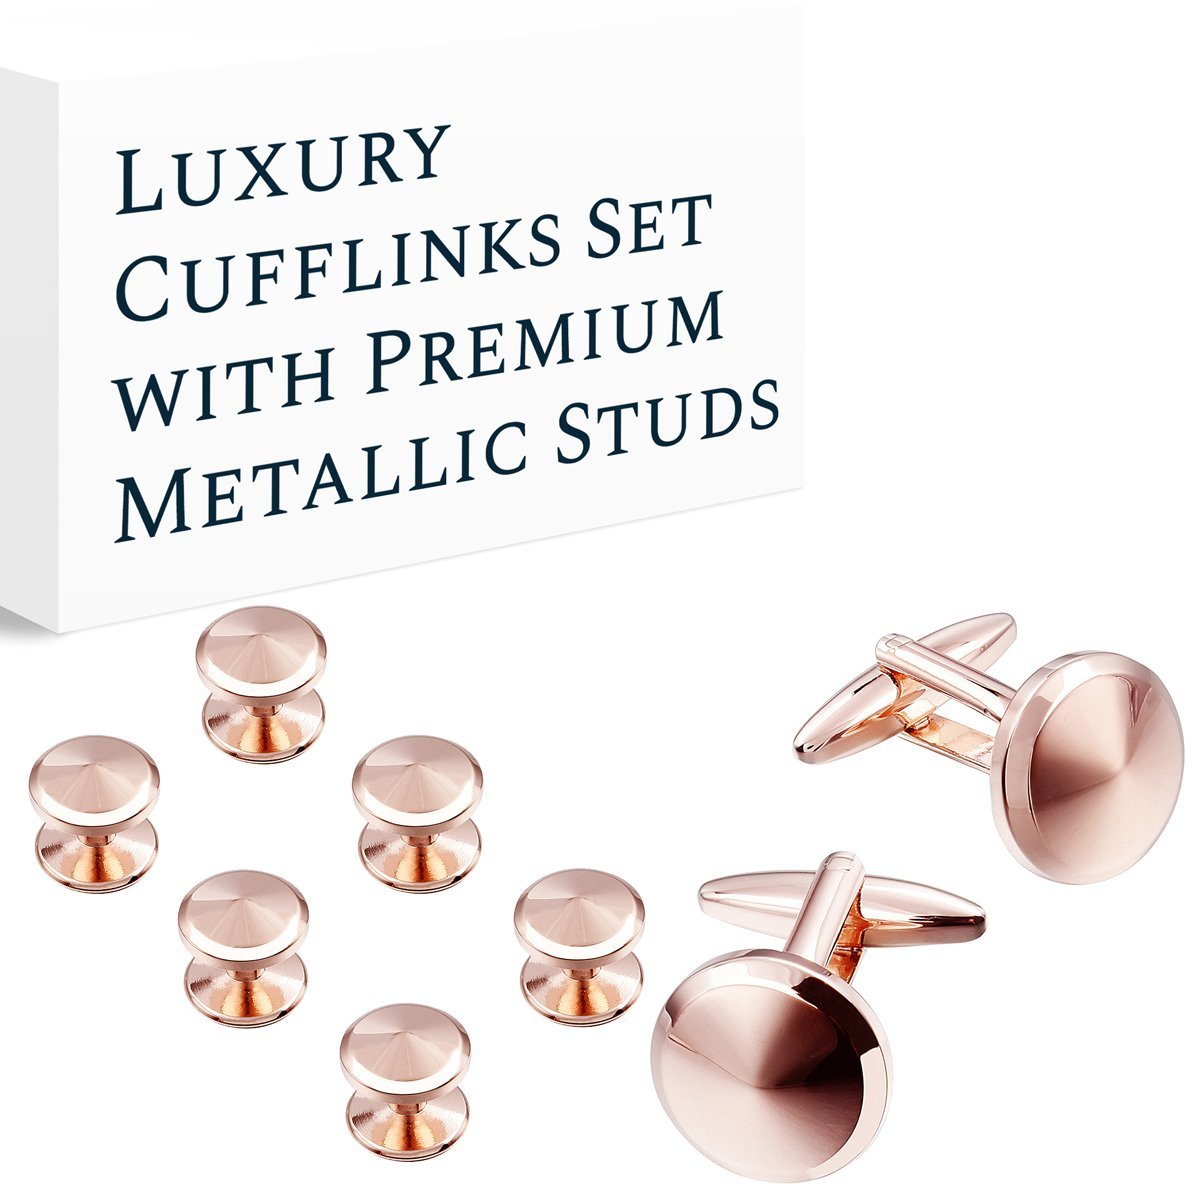 HAWSON Cufflink and Studs Tuxedo Set Rose Gold Color with Platinum Finish Two Cufflinks with Six Shirt Studs individually wrapped in Stylish Velvet Gift Bag